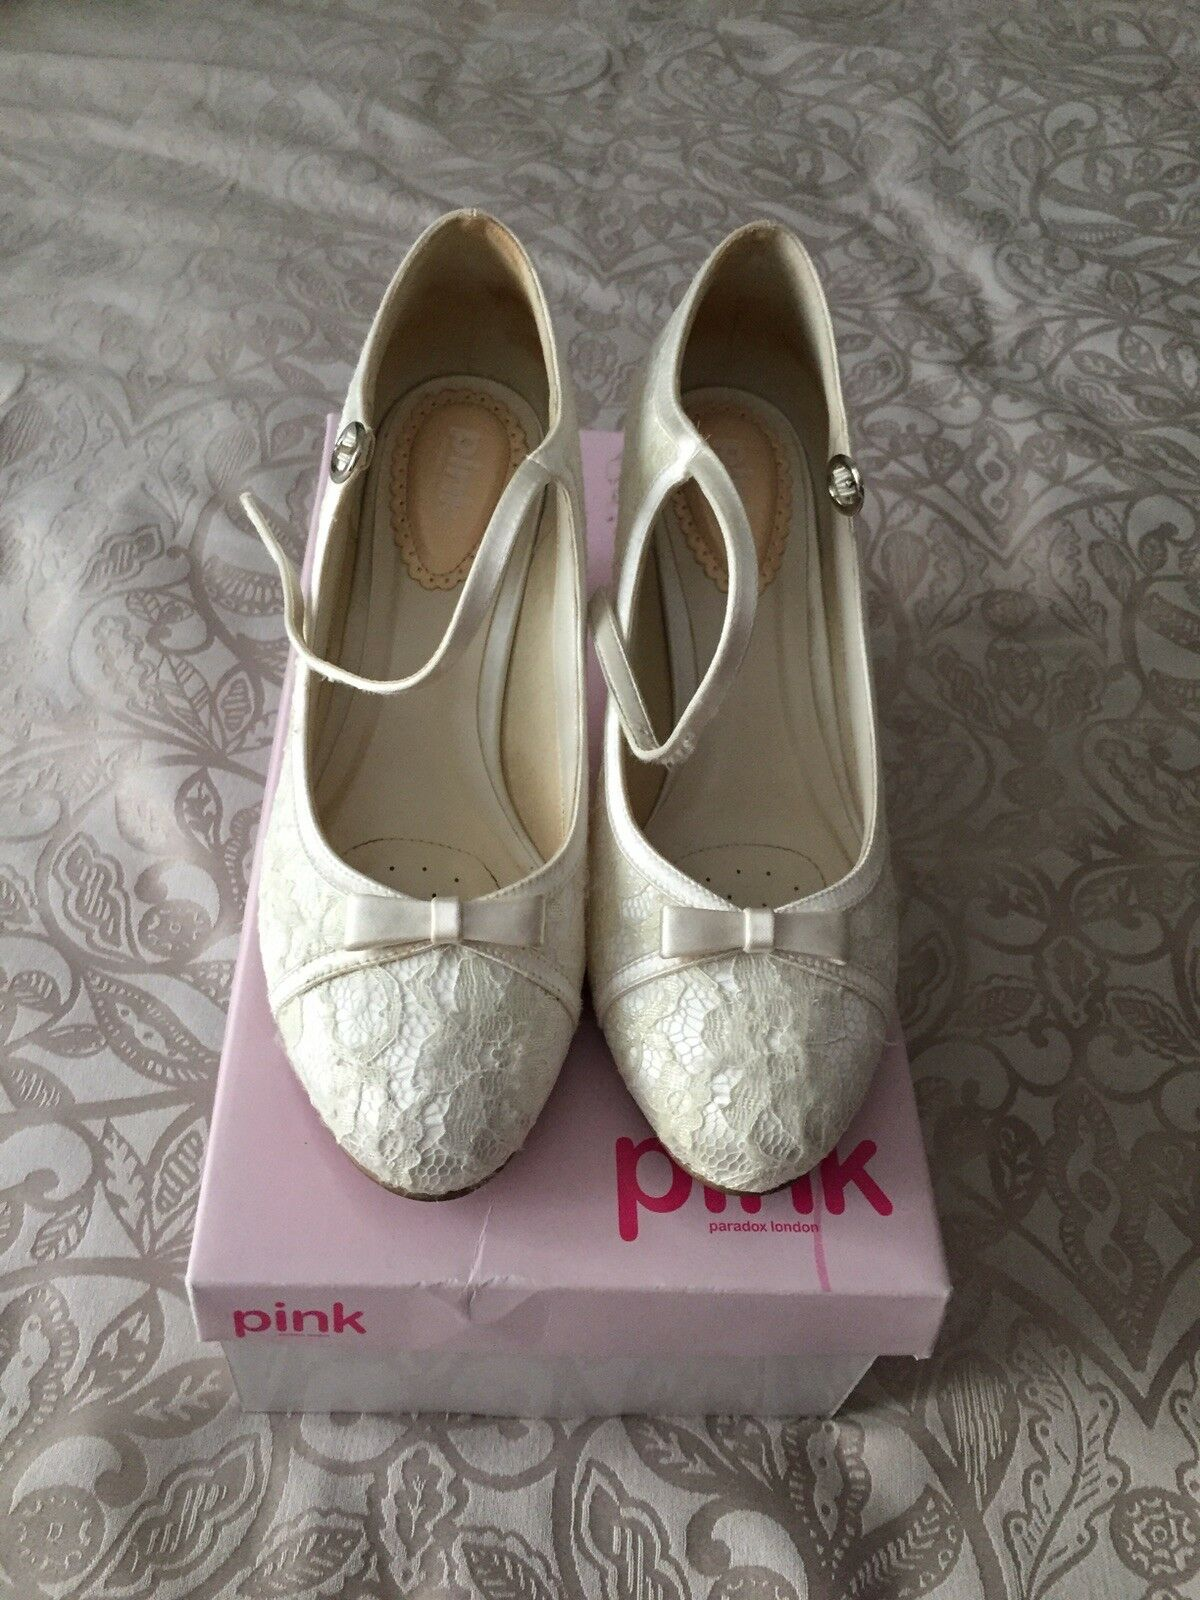 Wedding Shoes By Pink.